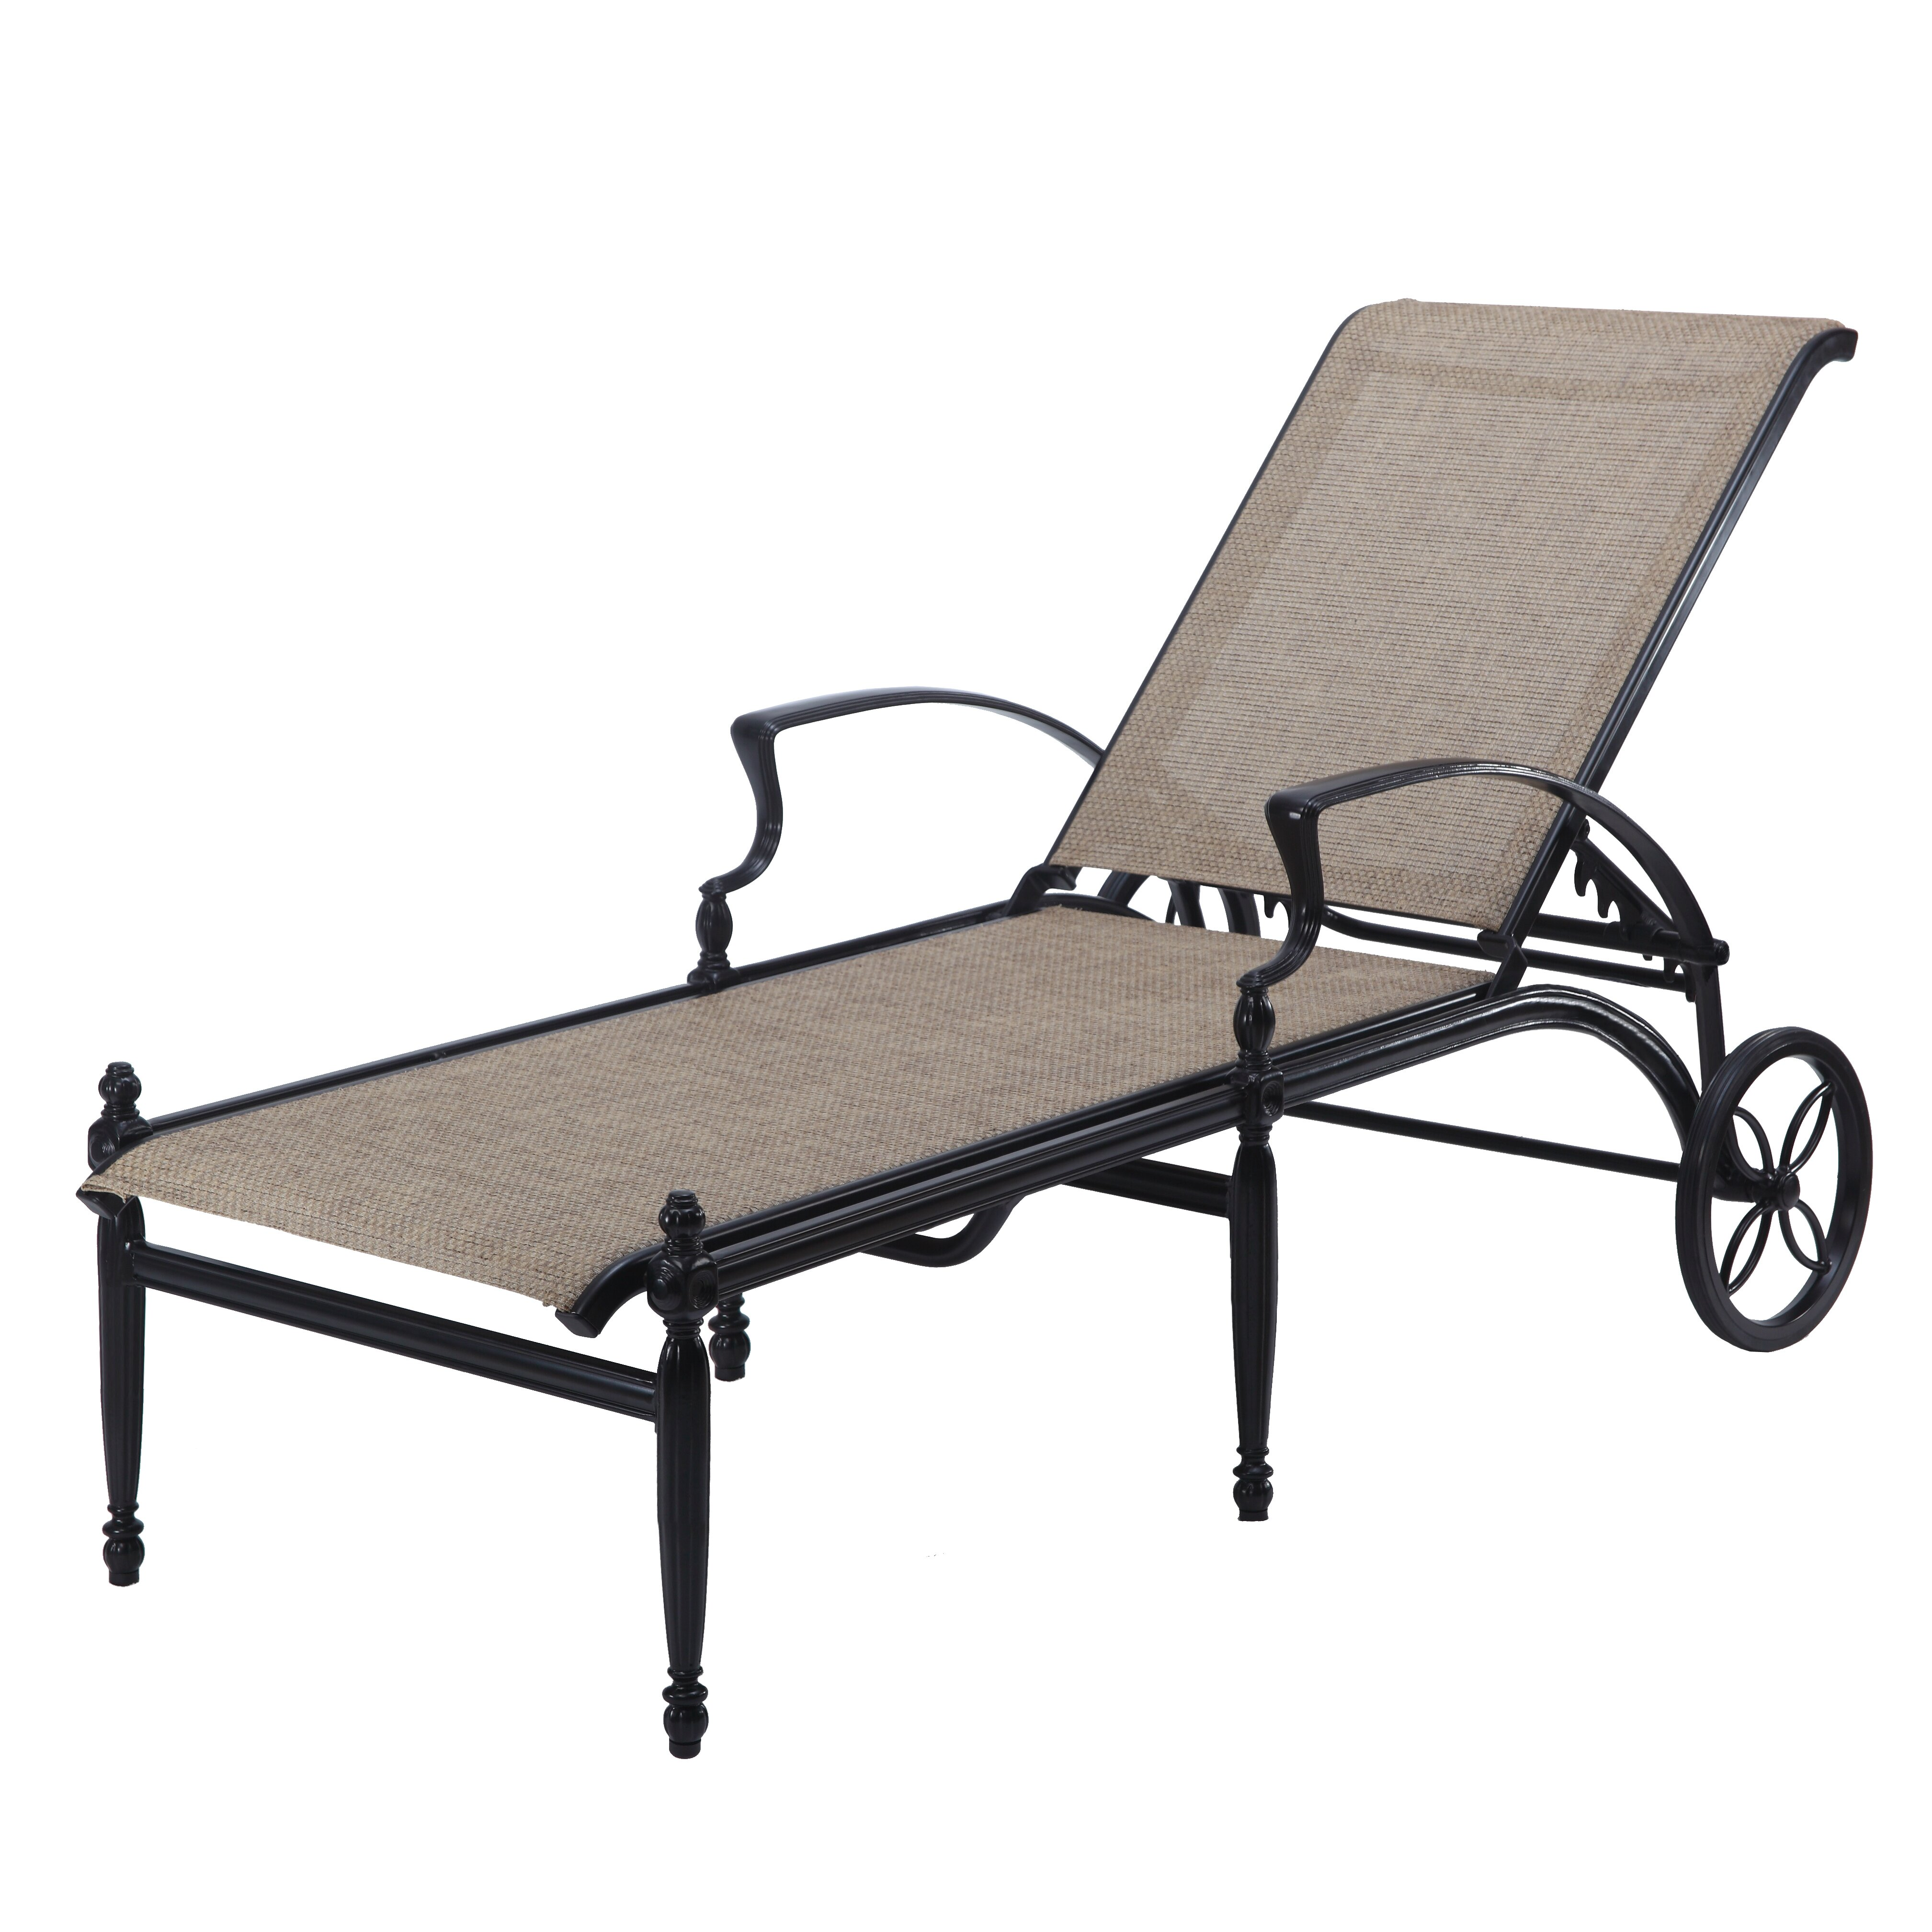 ... Gensun Casual Living Bel Air Chaise Lounge ...